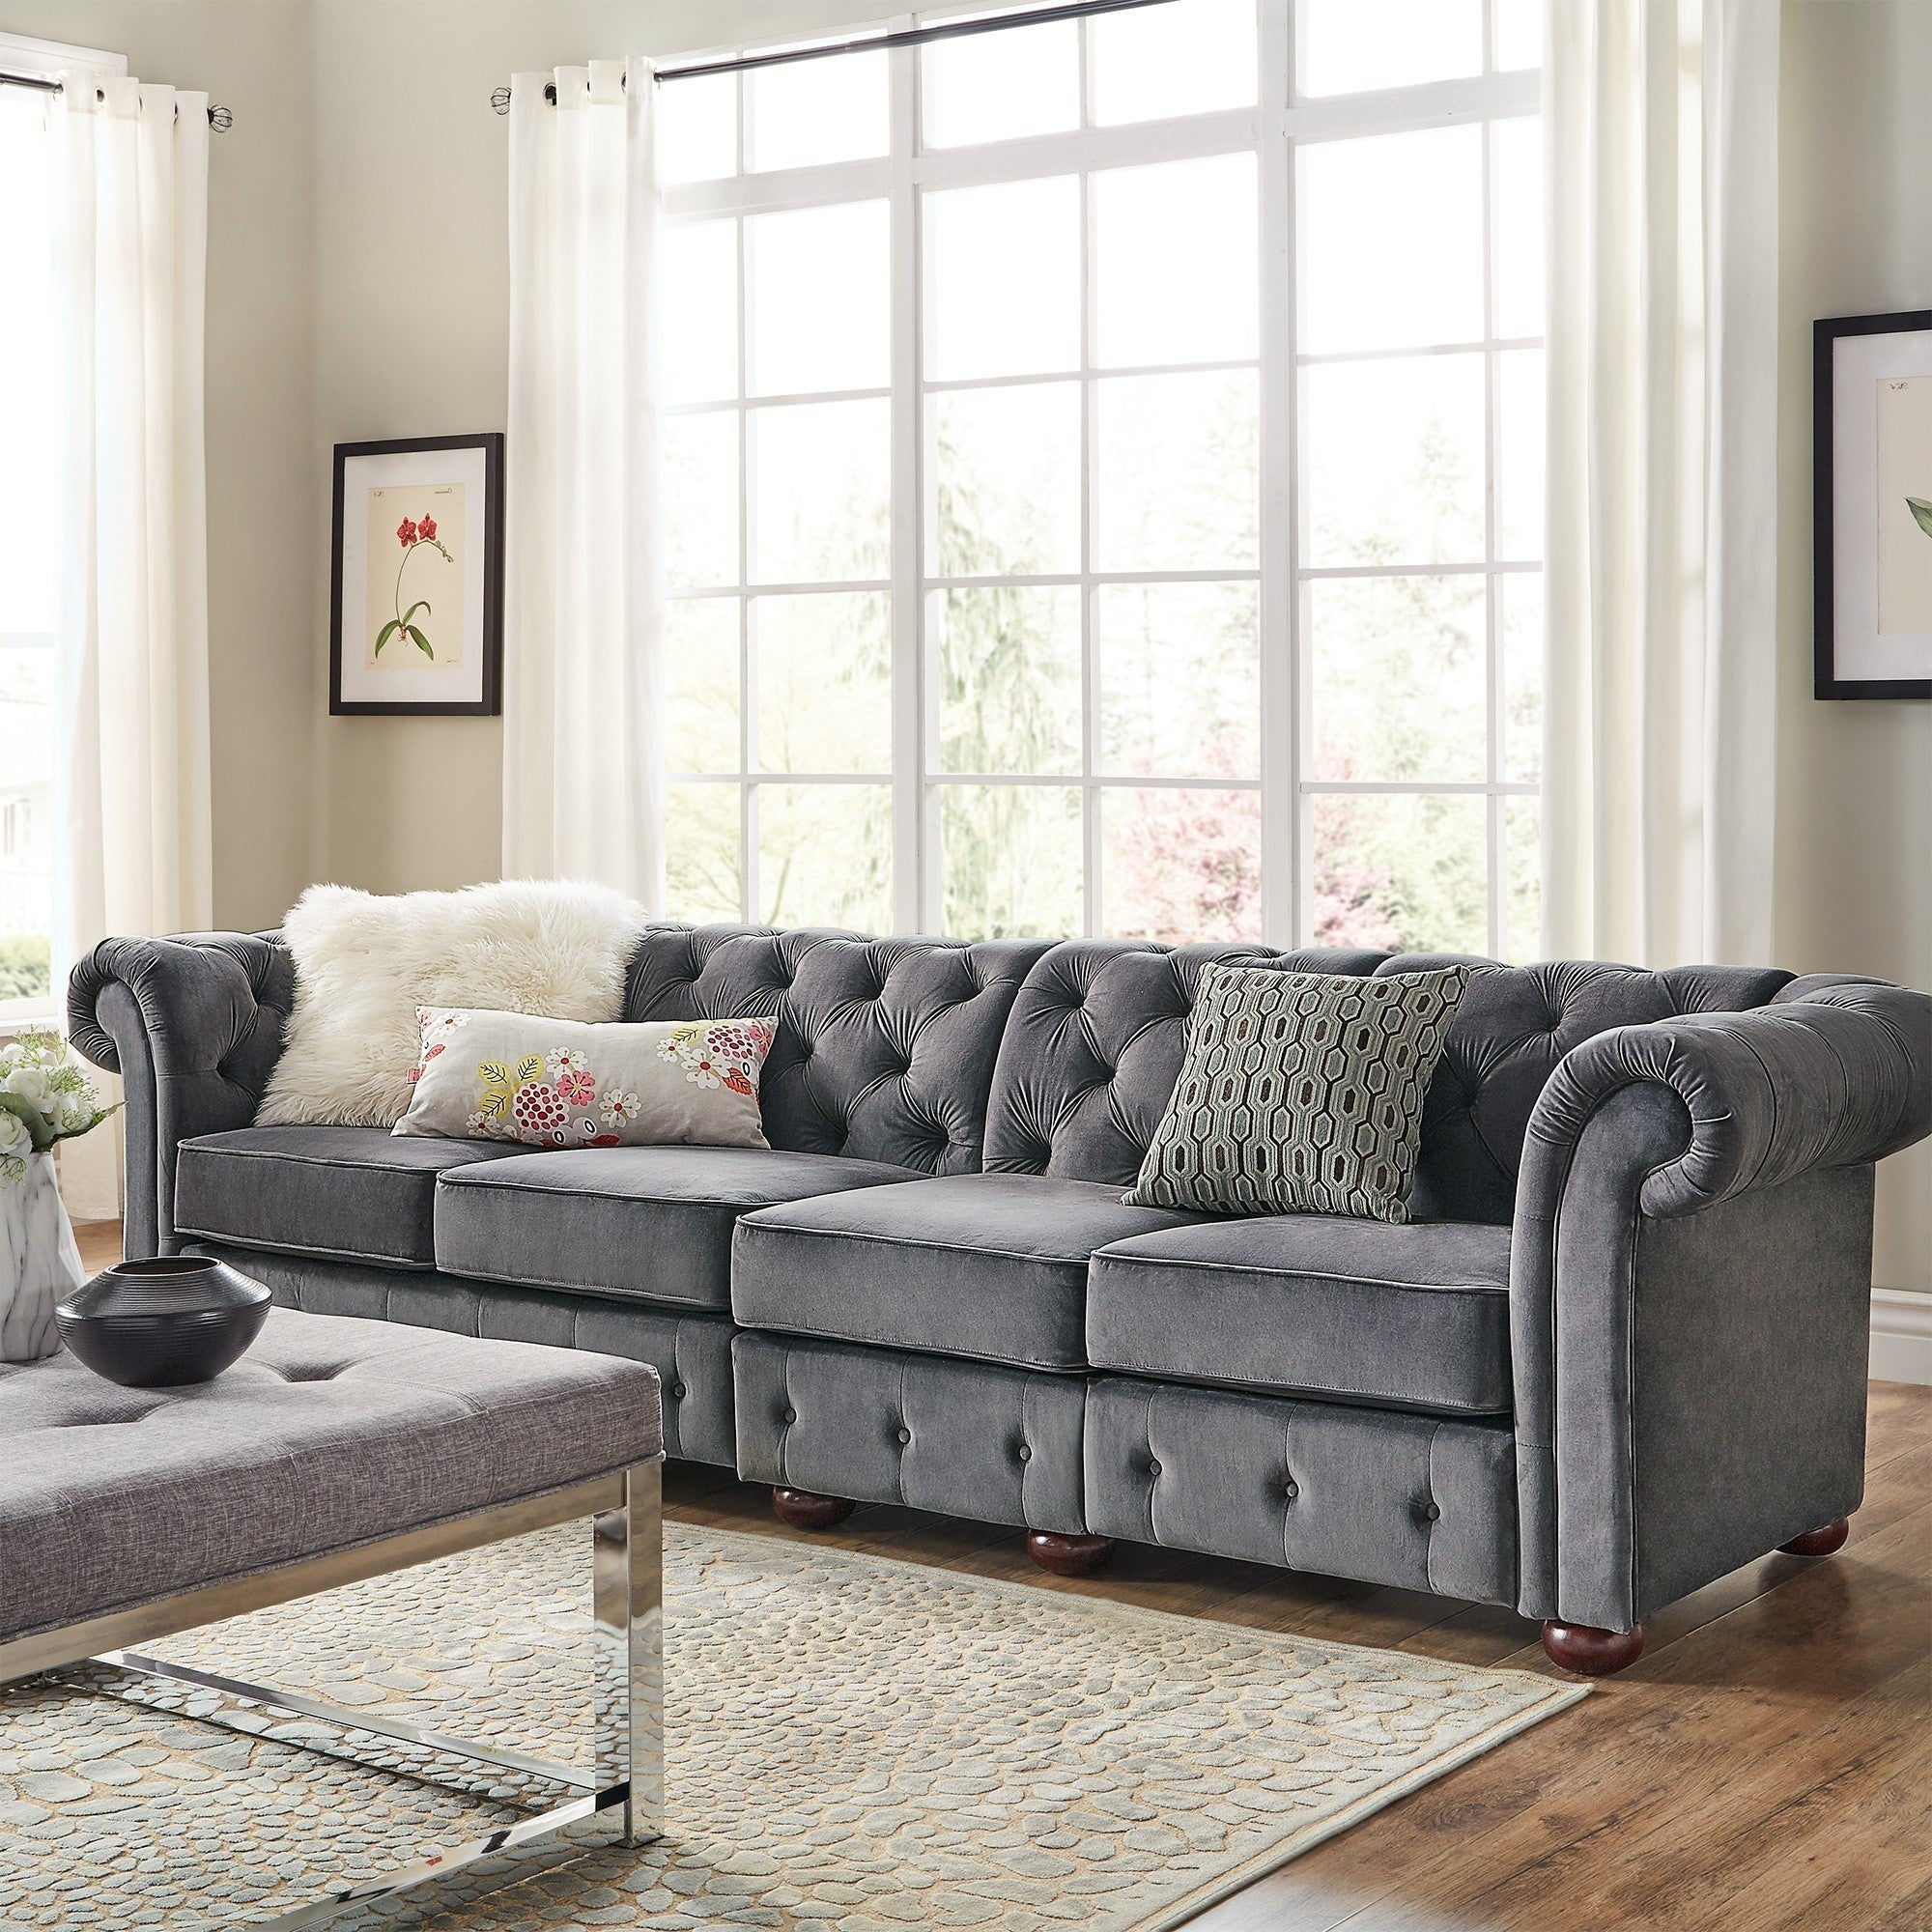 Knightsbridge Velvet Tufted Scroll Arm Chesterfield Extra Long Sofa by  iNSPIRE Q Artisan - Free Shipping Today - Overstock.com - 23667374